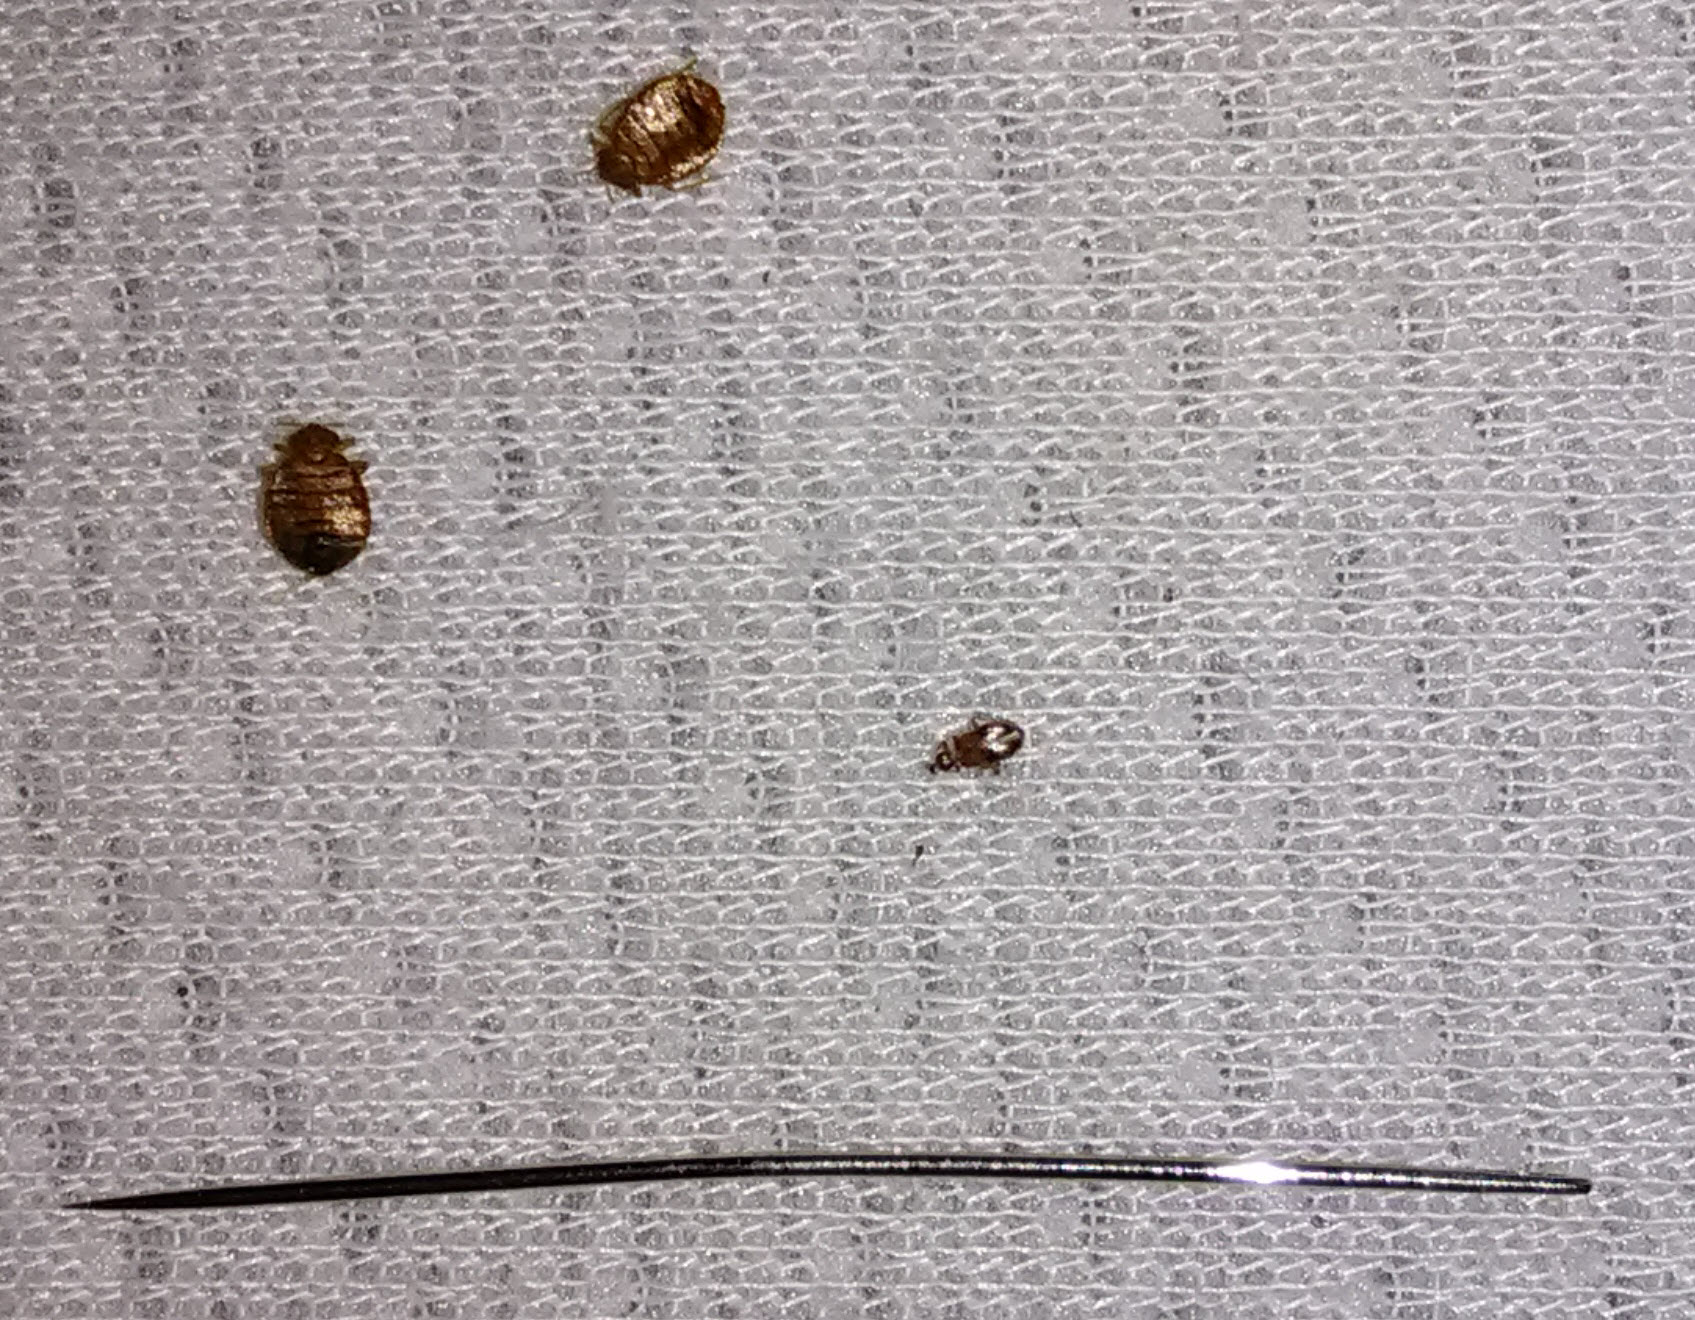 three bed bugs near a pin.